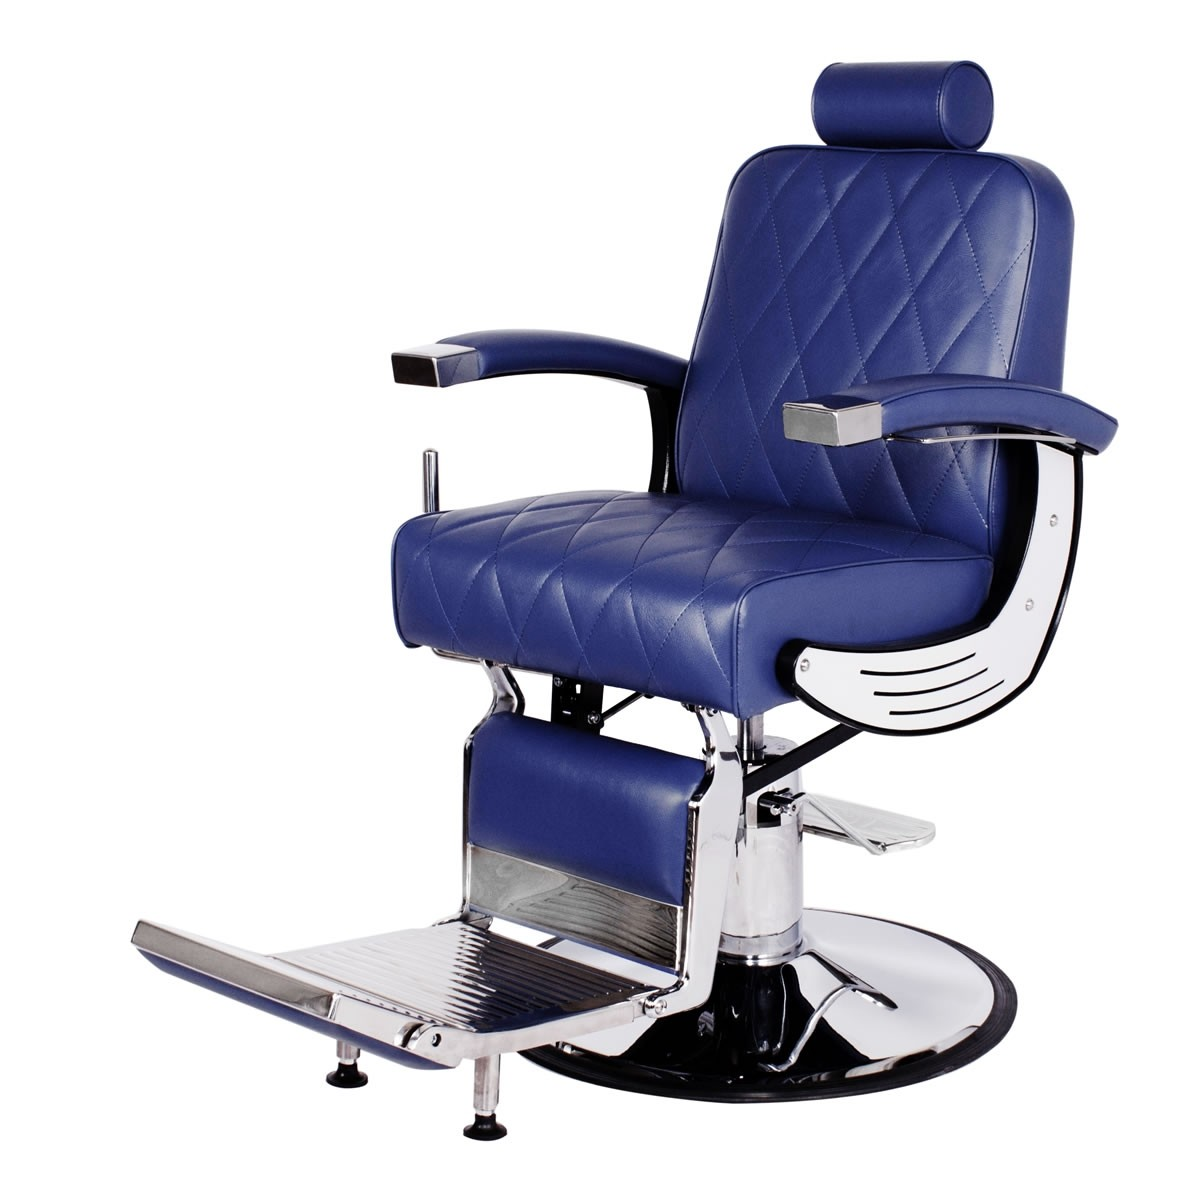 """BARON"" Heavy Duty Barber Chair in Royal Blue, Blue Barber Chair, Blue Barbershop Chairs"